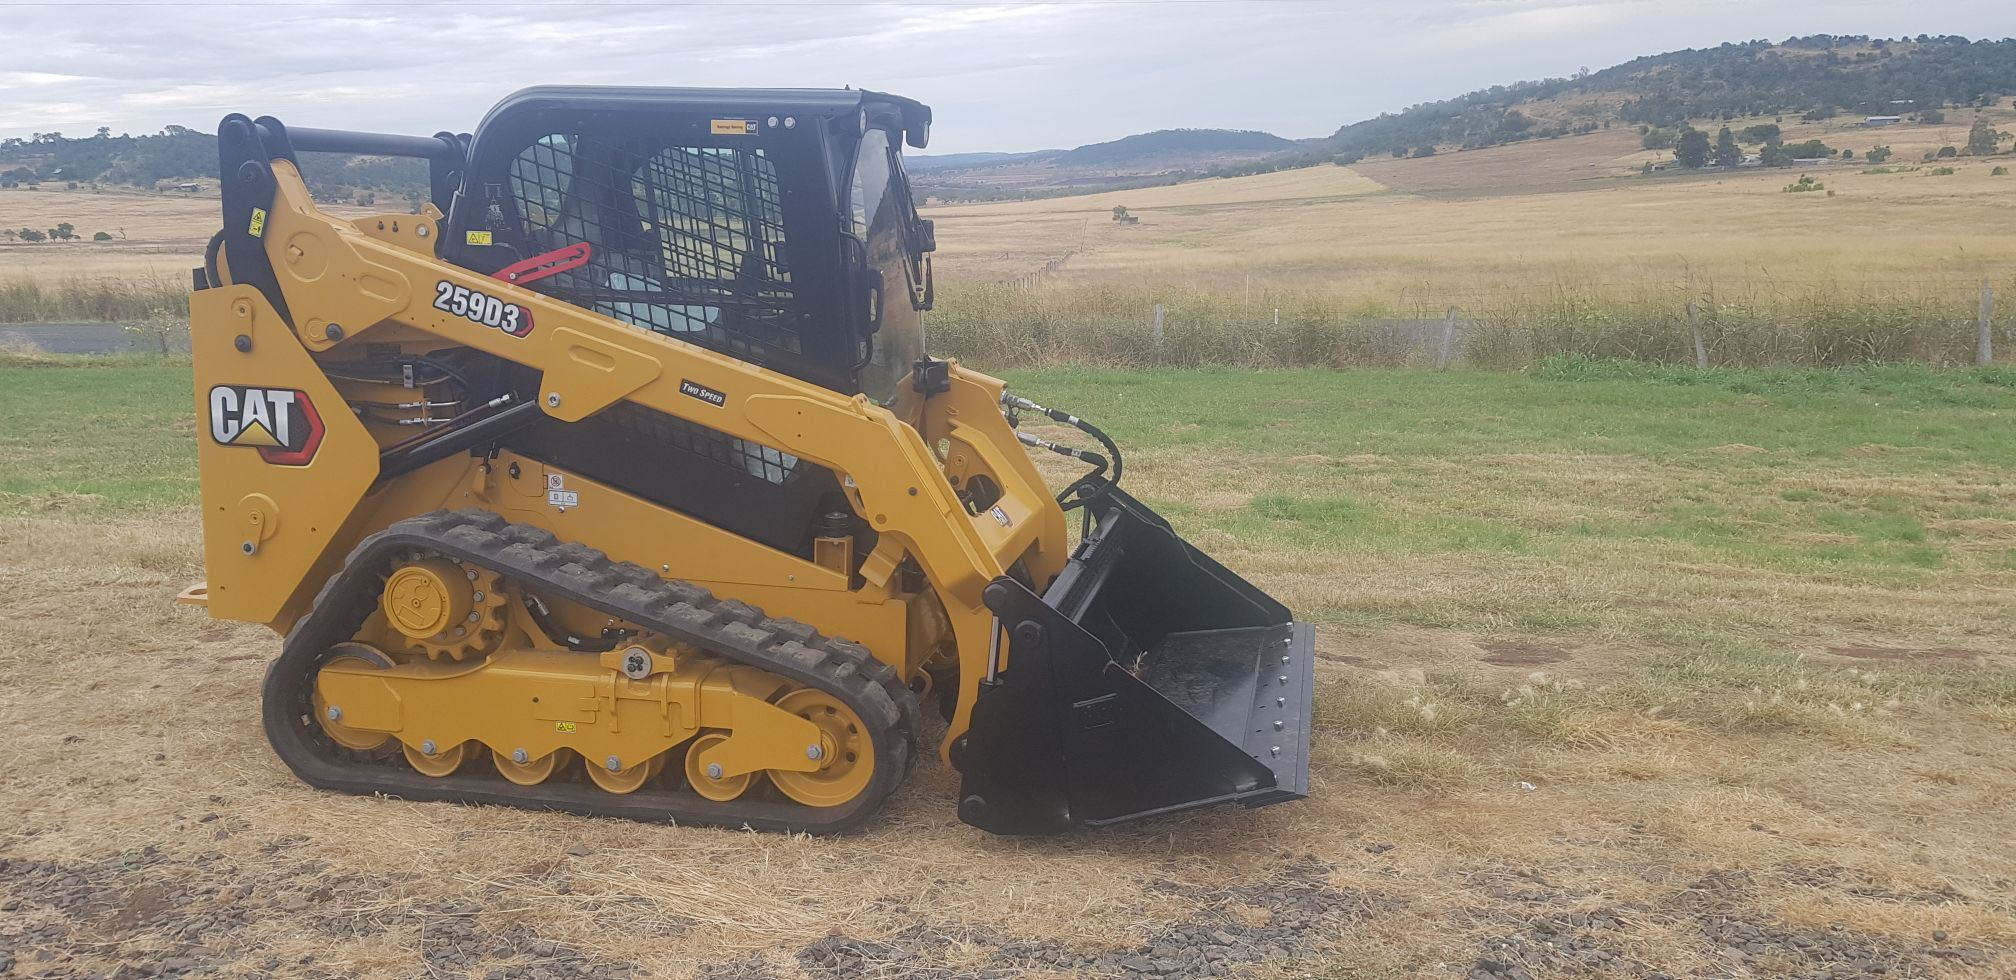 Hire Cat 259D3 tracked skid steer